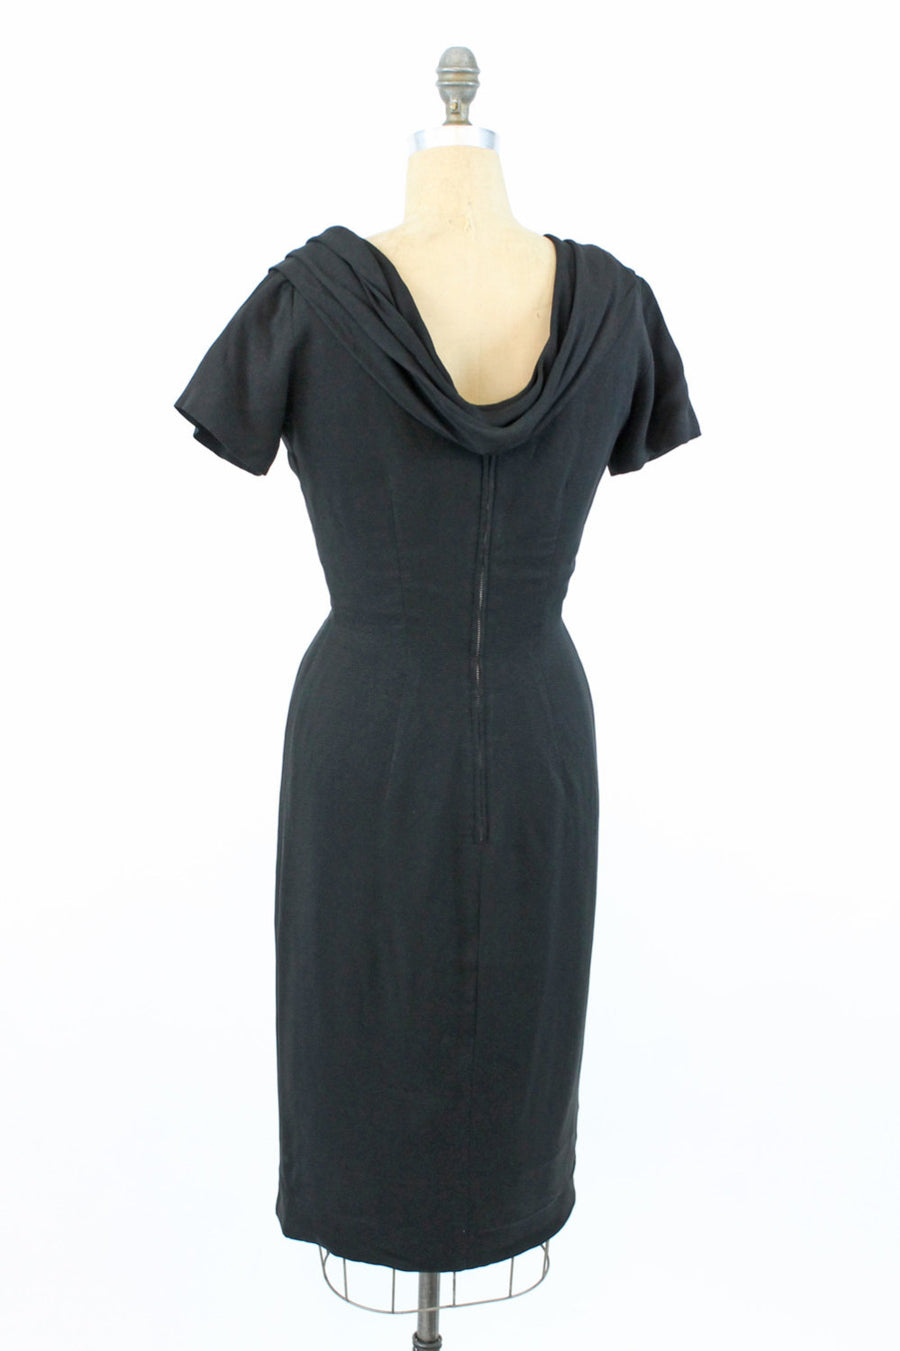 1950s Suzy Perette dress small | vintage draped back dress